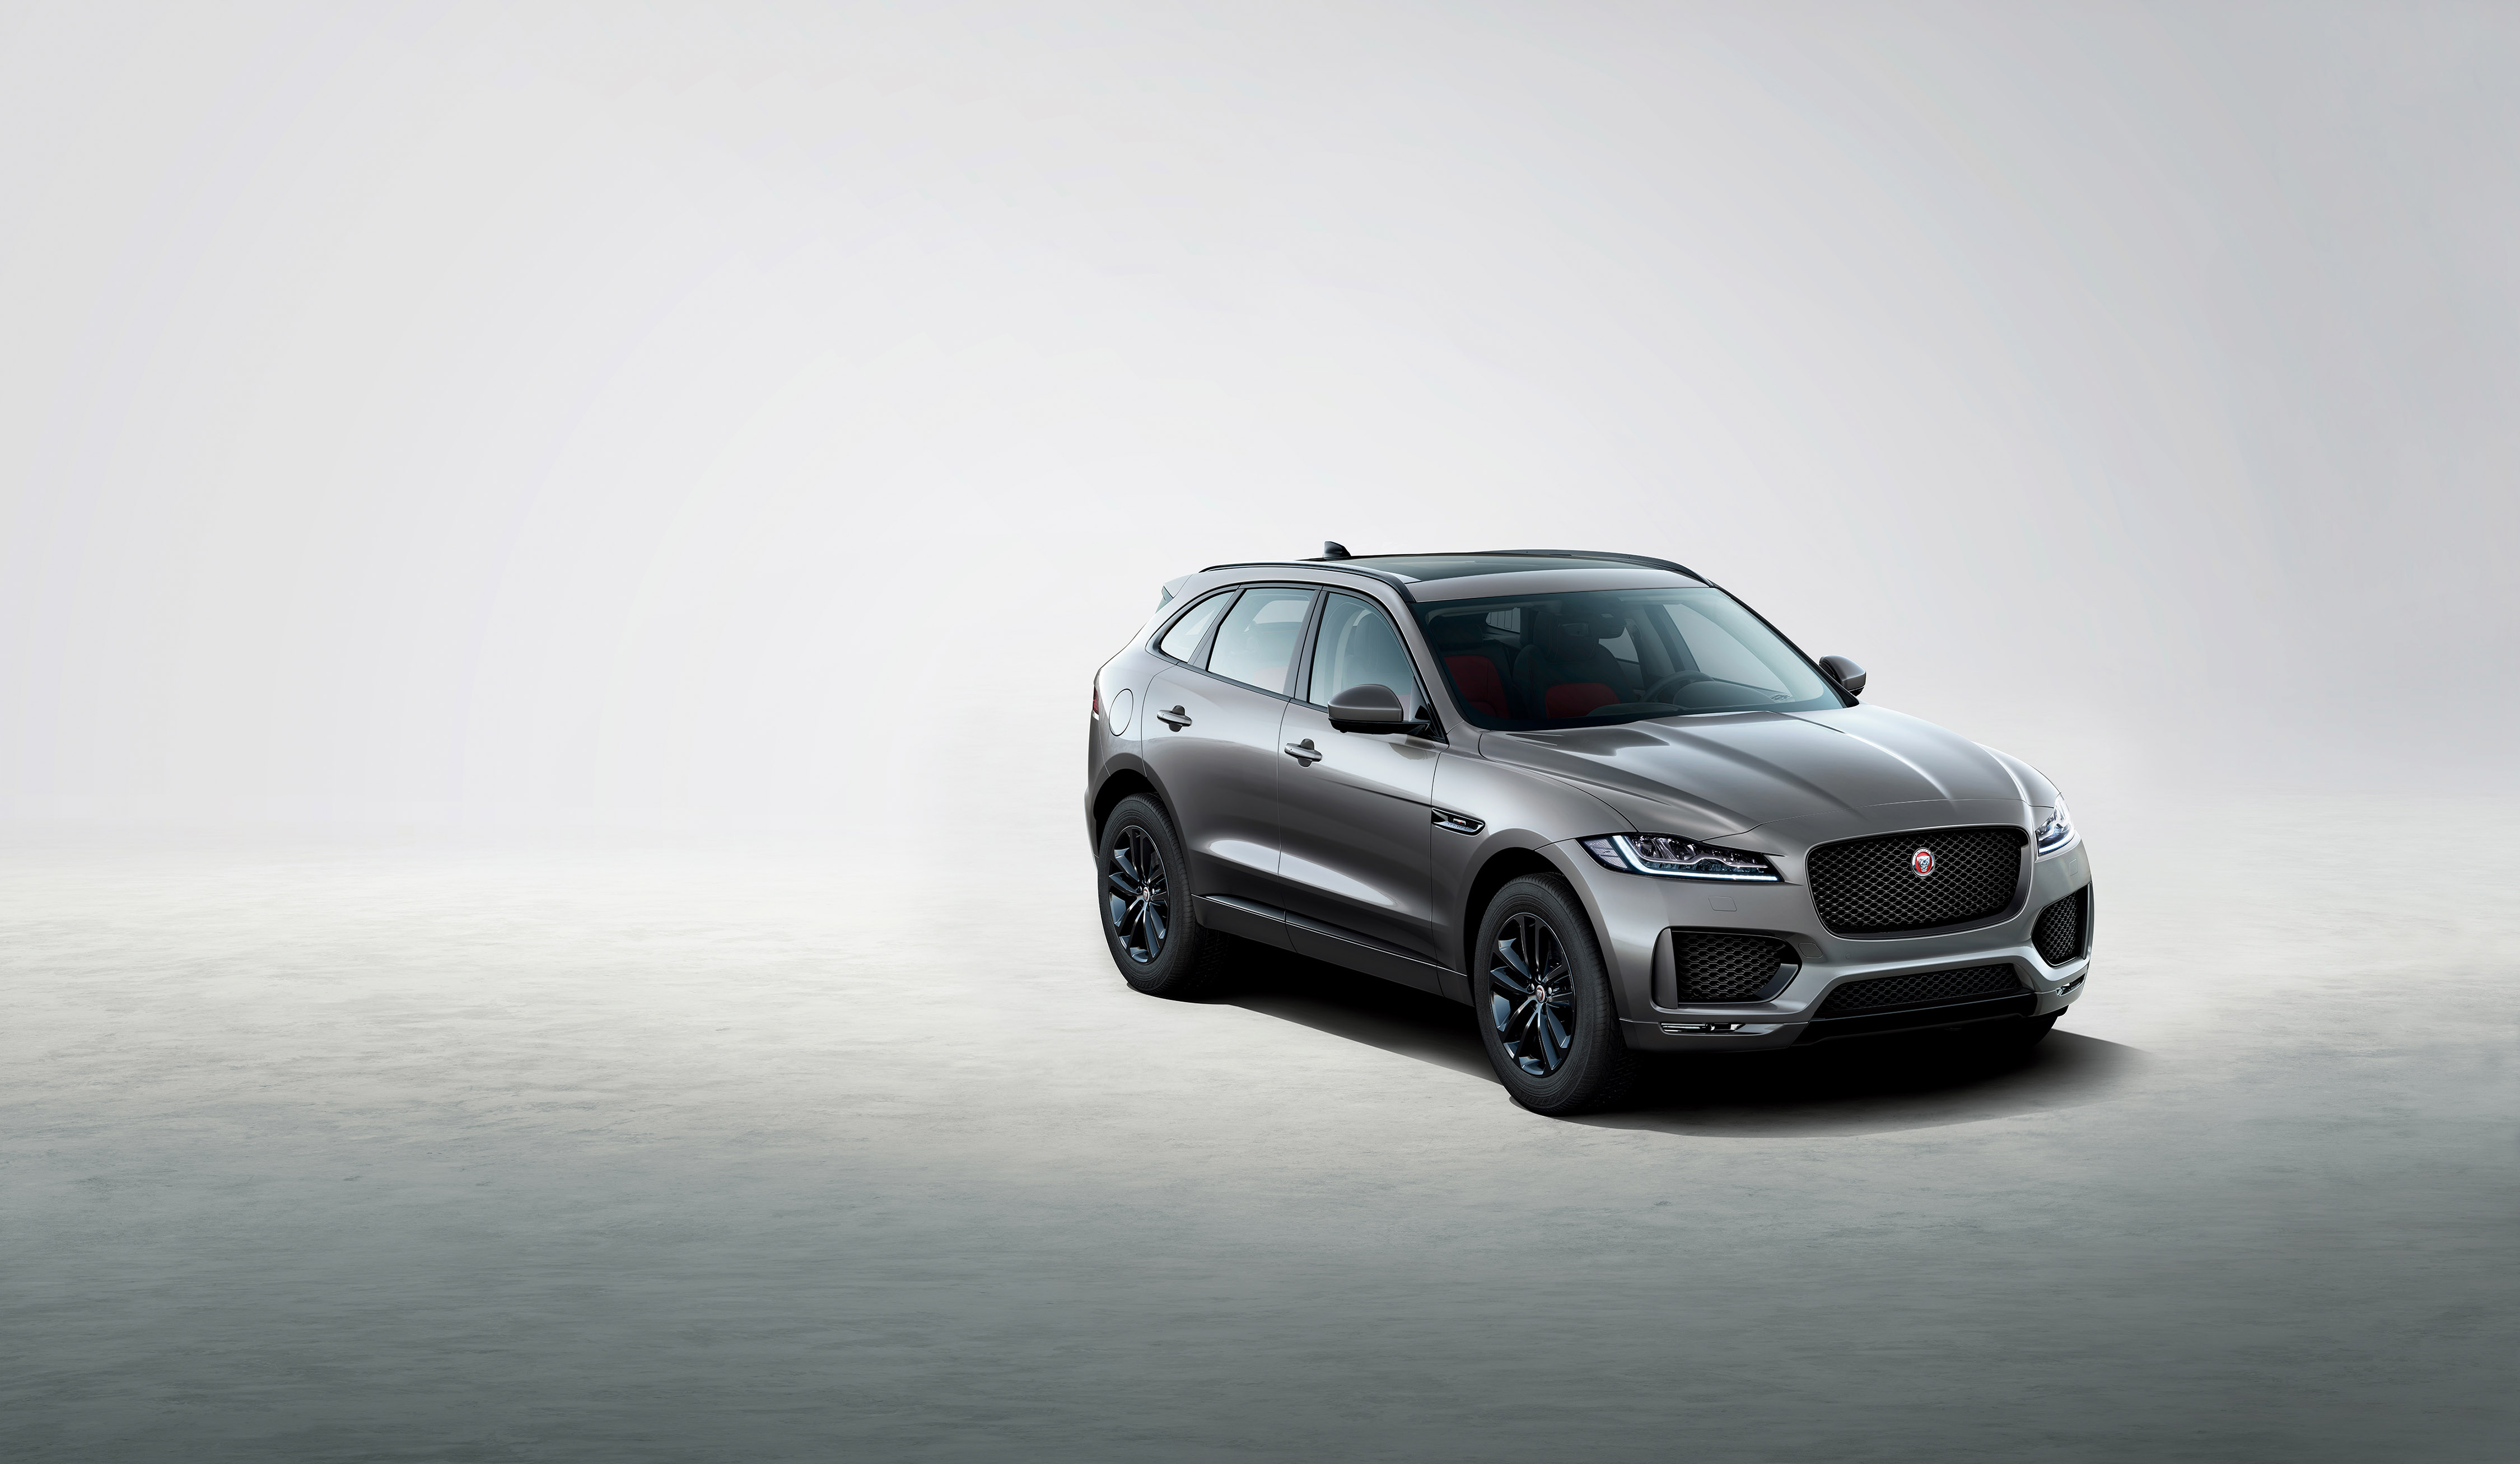 306754 jag f pace 20my chequered flag 190319 010 pr2 5db9a0 original 1552999966